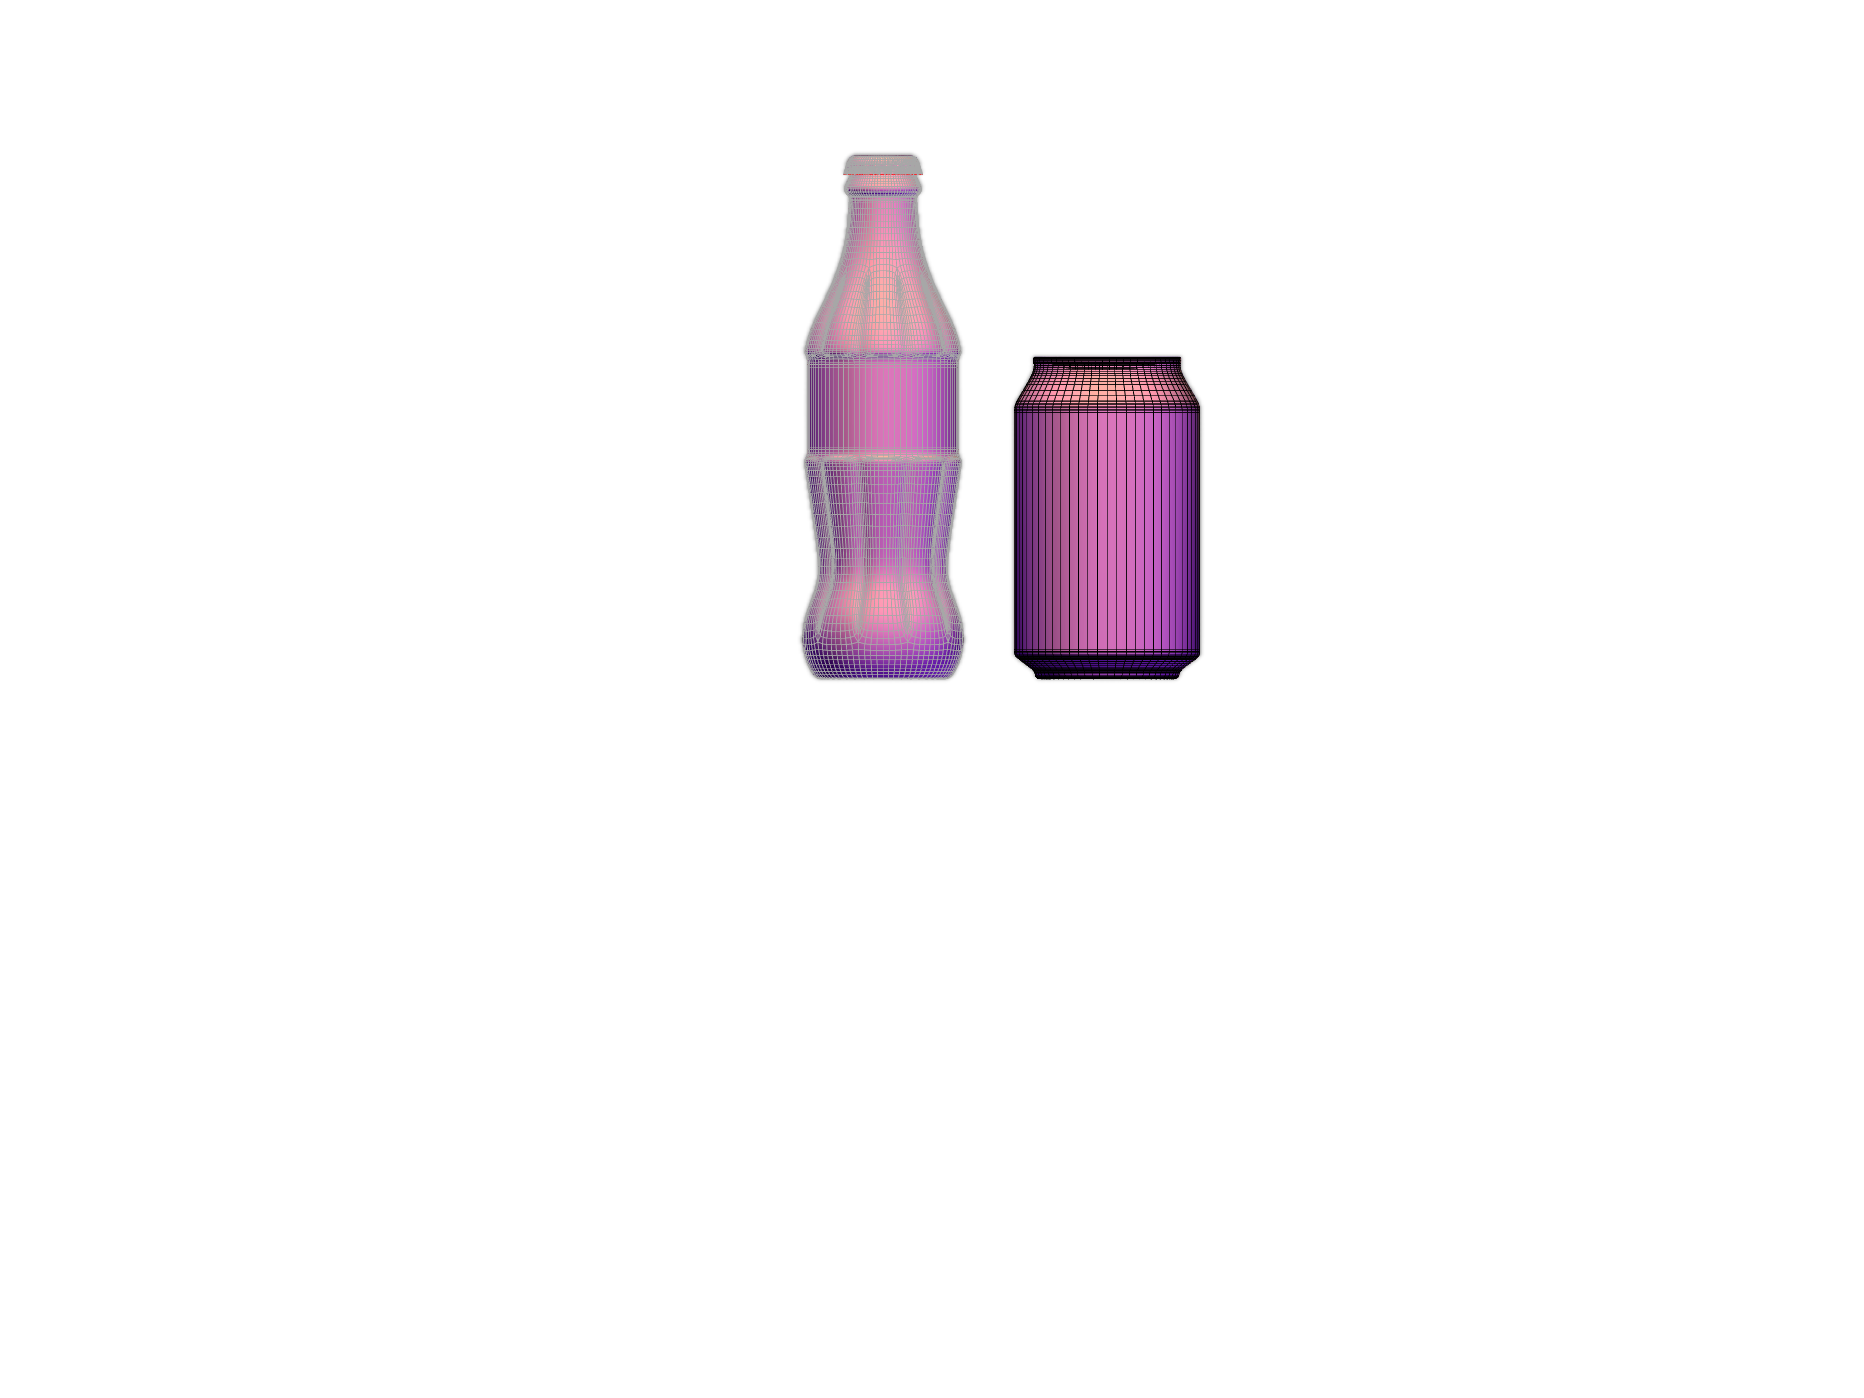 Bottles - 3D design by Jamie Ranston May 31, 2018